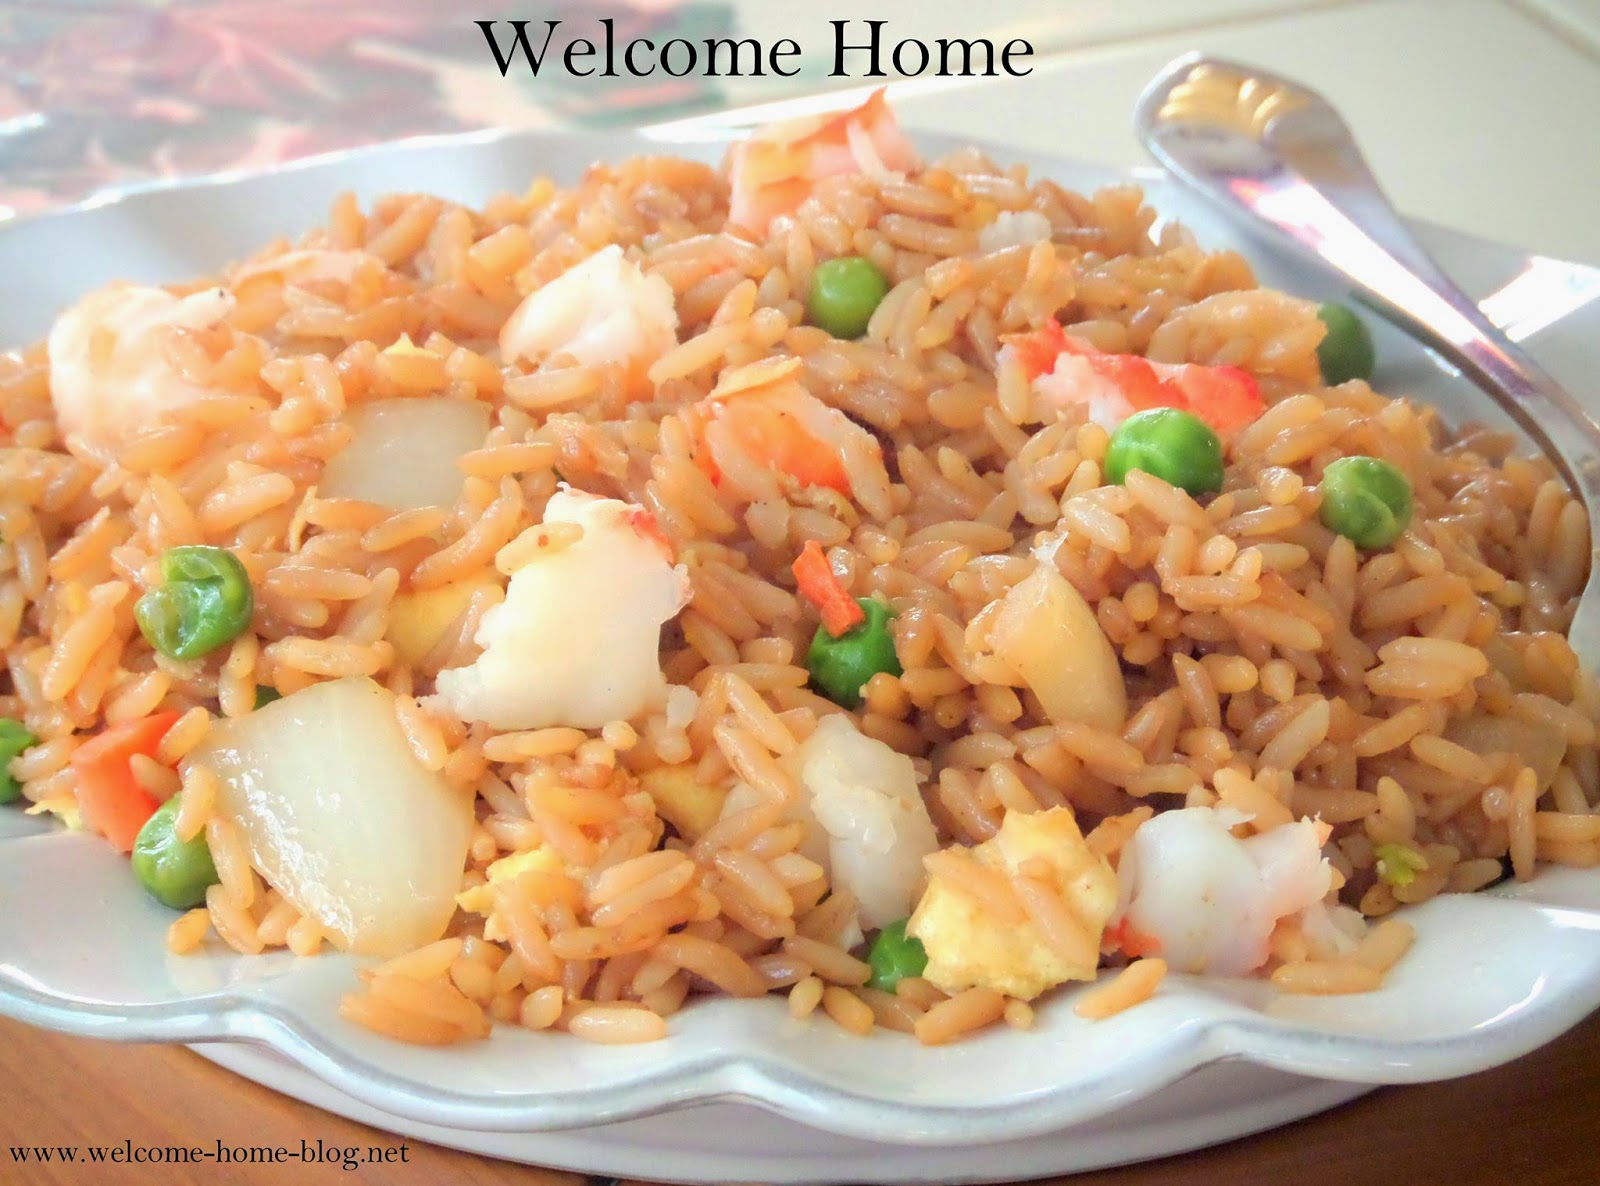 Welcome Home Blog: ♥ Shrimp Fried Rice